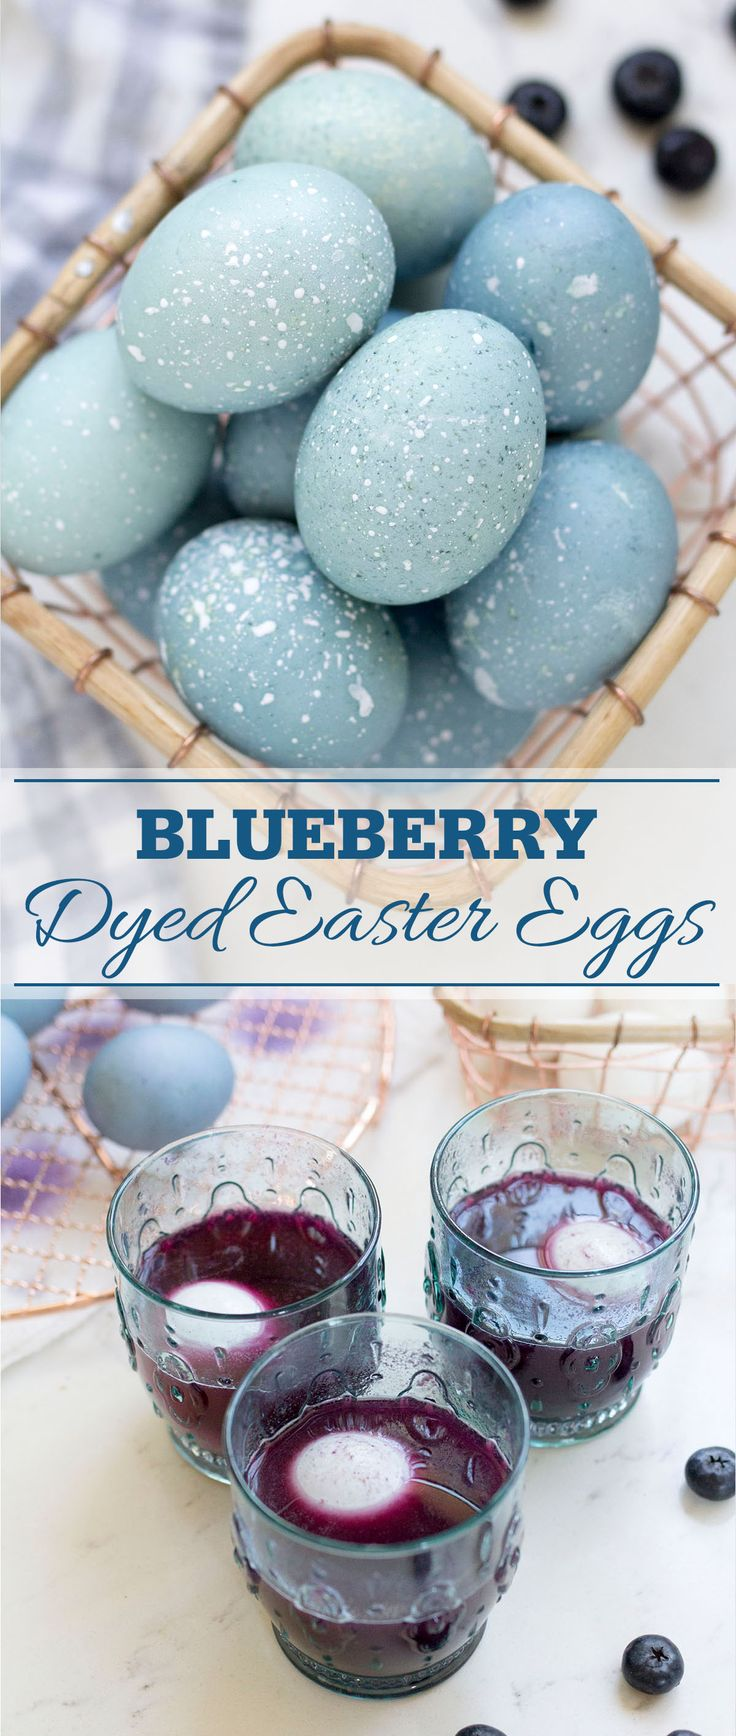 How to dye Easter Eggs with an all natural egg dye made from blueberries!